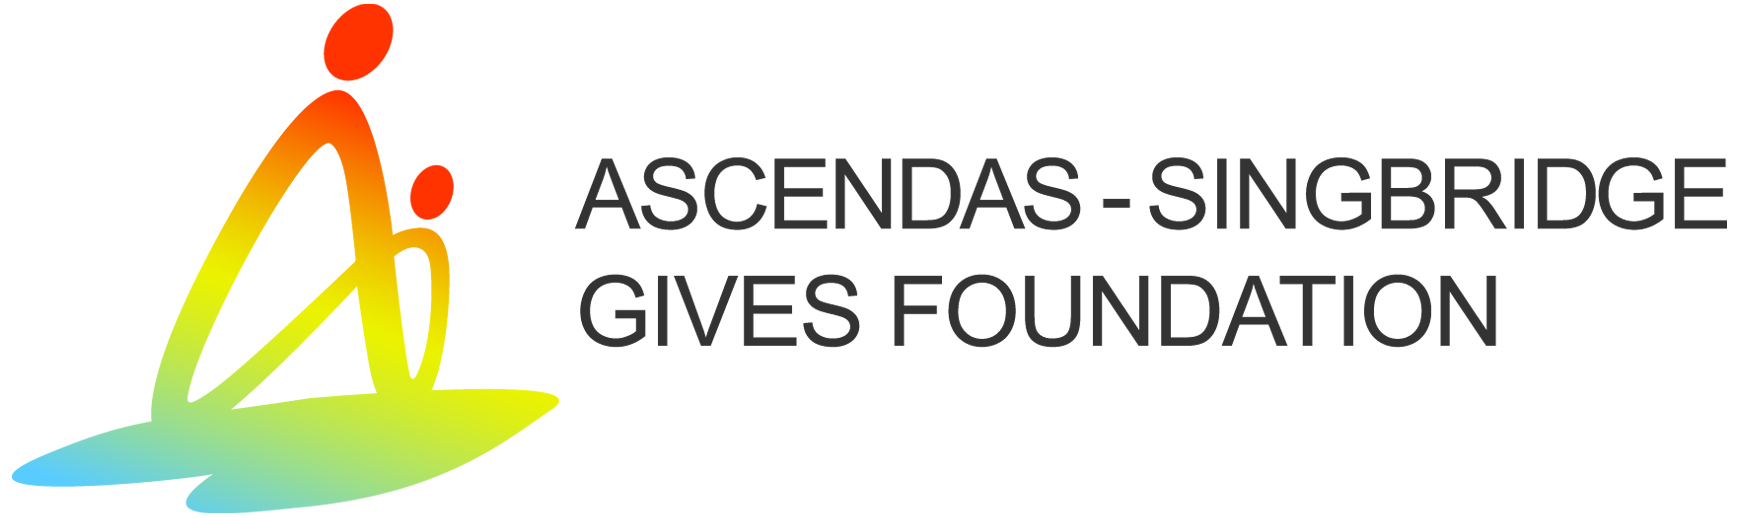 Ascendas-Singbridge Logo Foundation_English.jpg